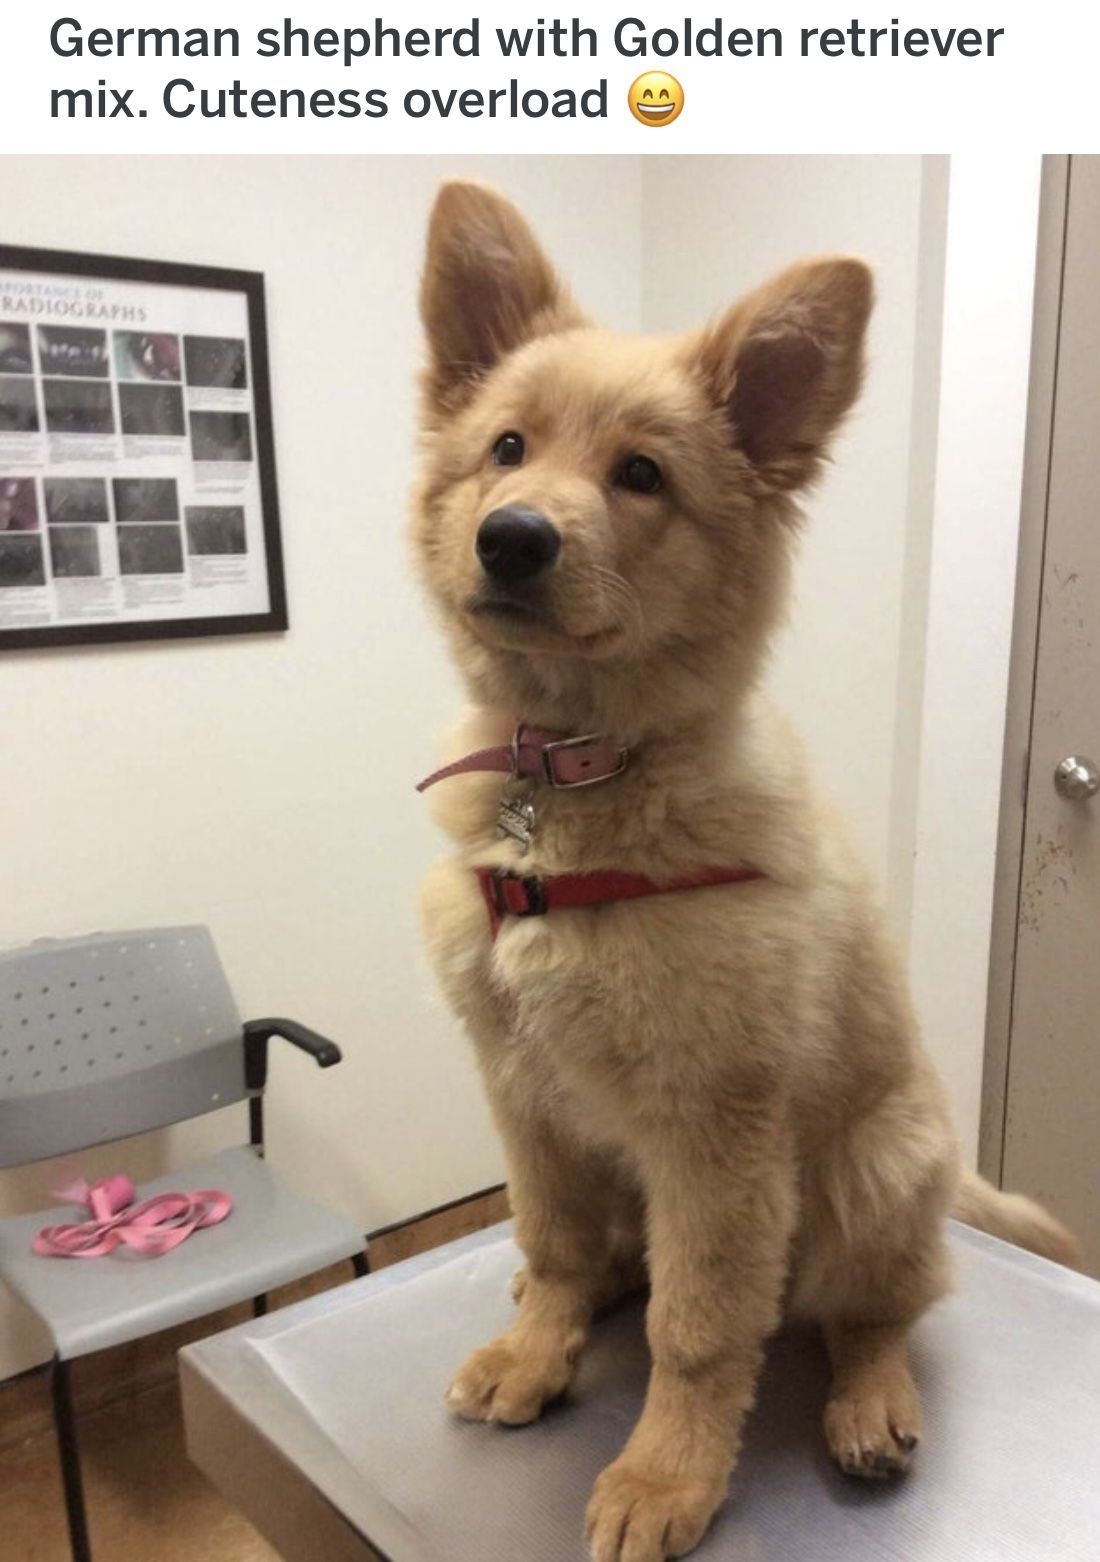 German Shepherd Mixed W Golden Retriever Shepherd Puppies